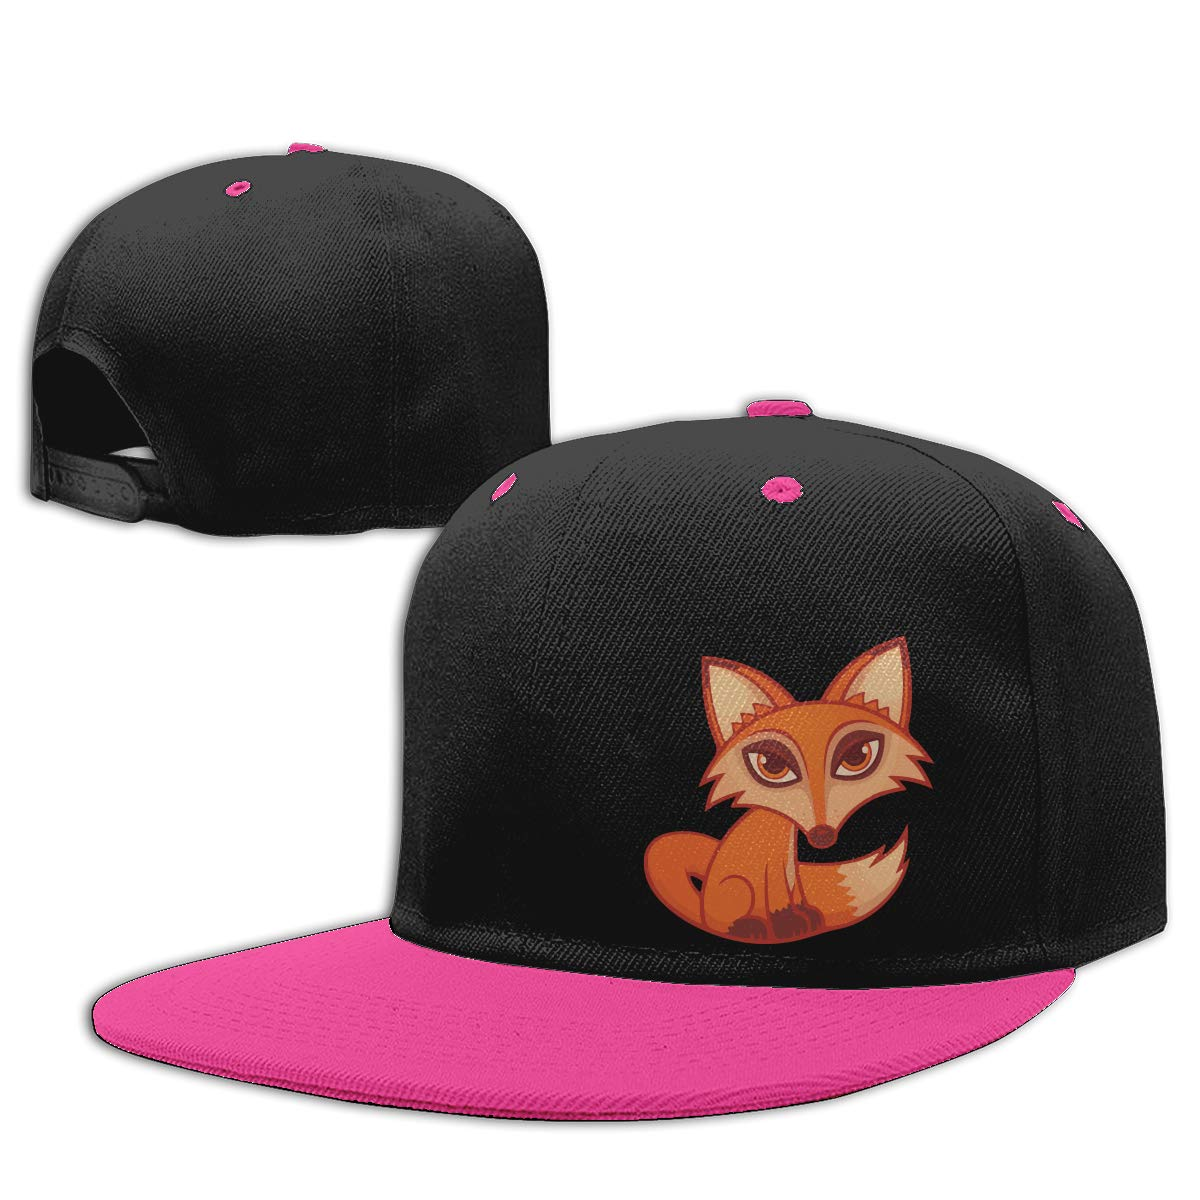 Men Womens Plain Cap Cartoon Red Fox Adults Flat Brim Baseball Caps